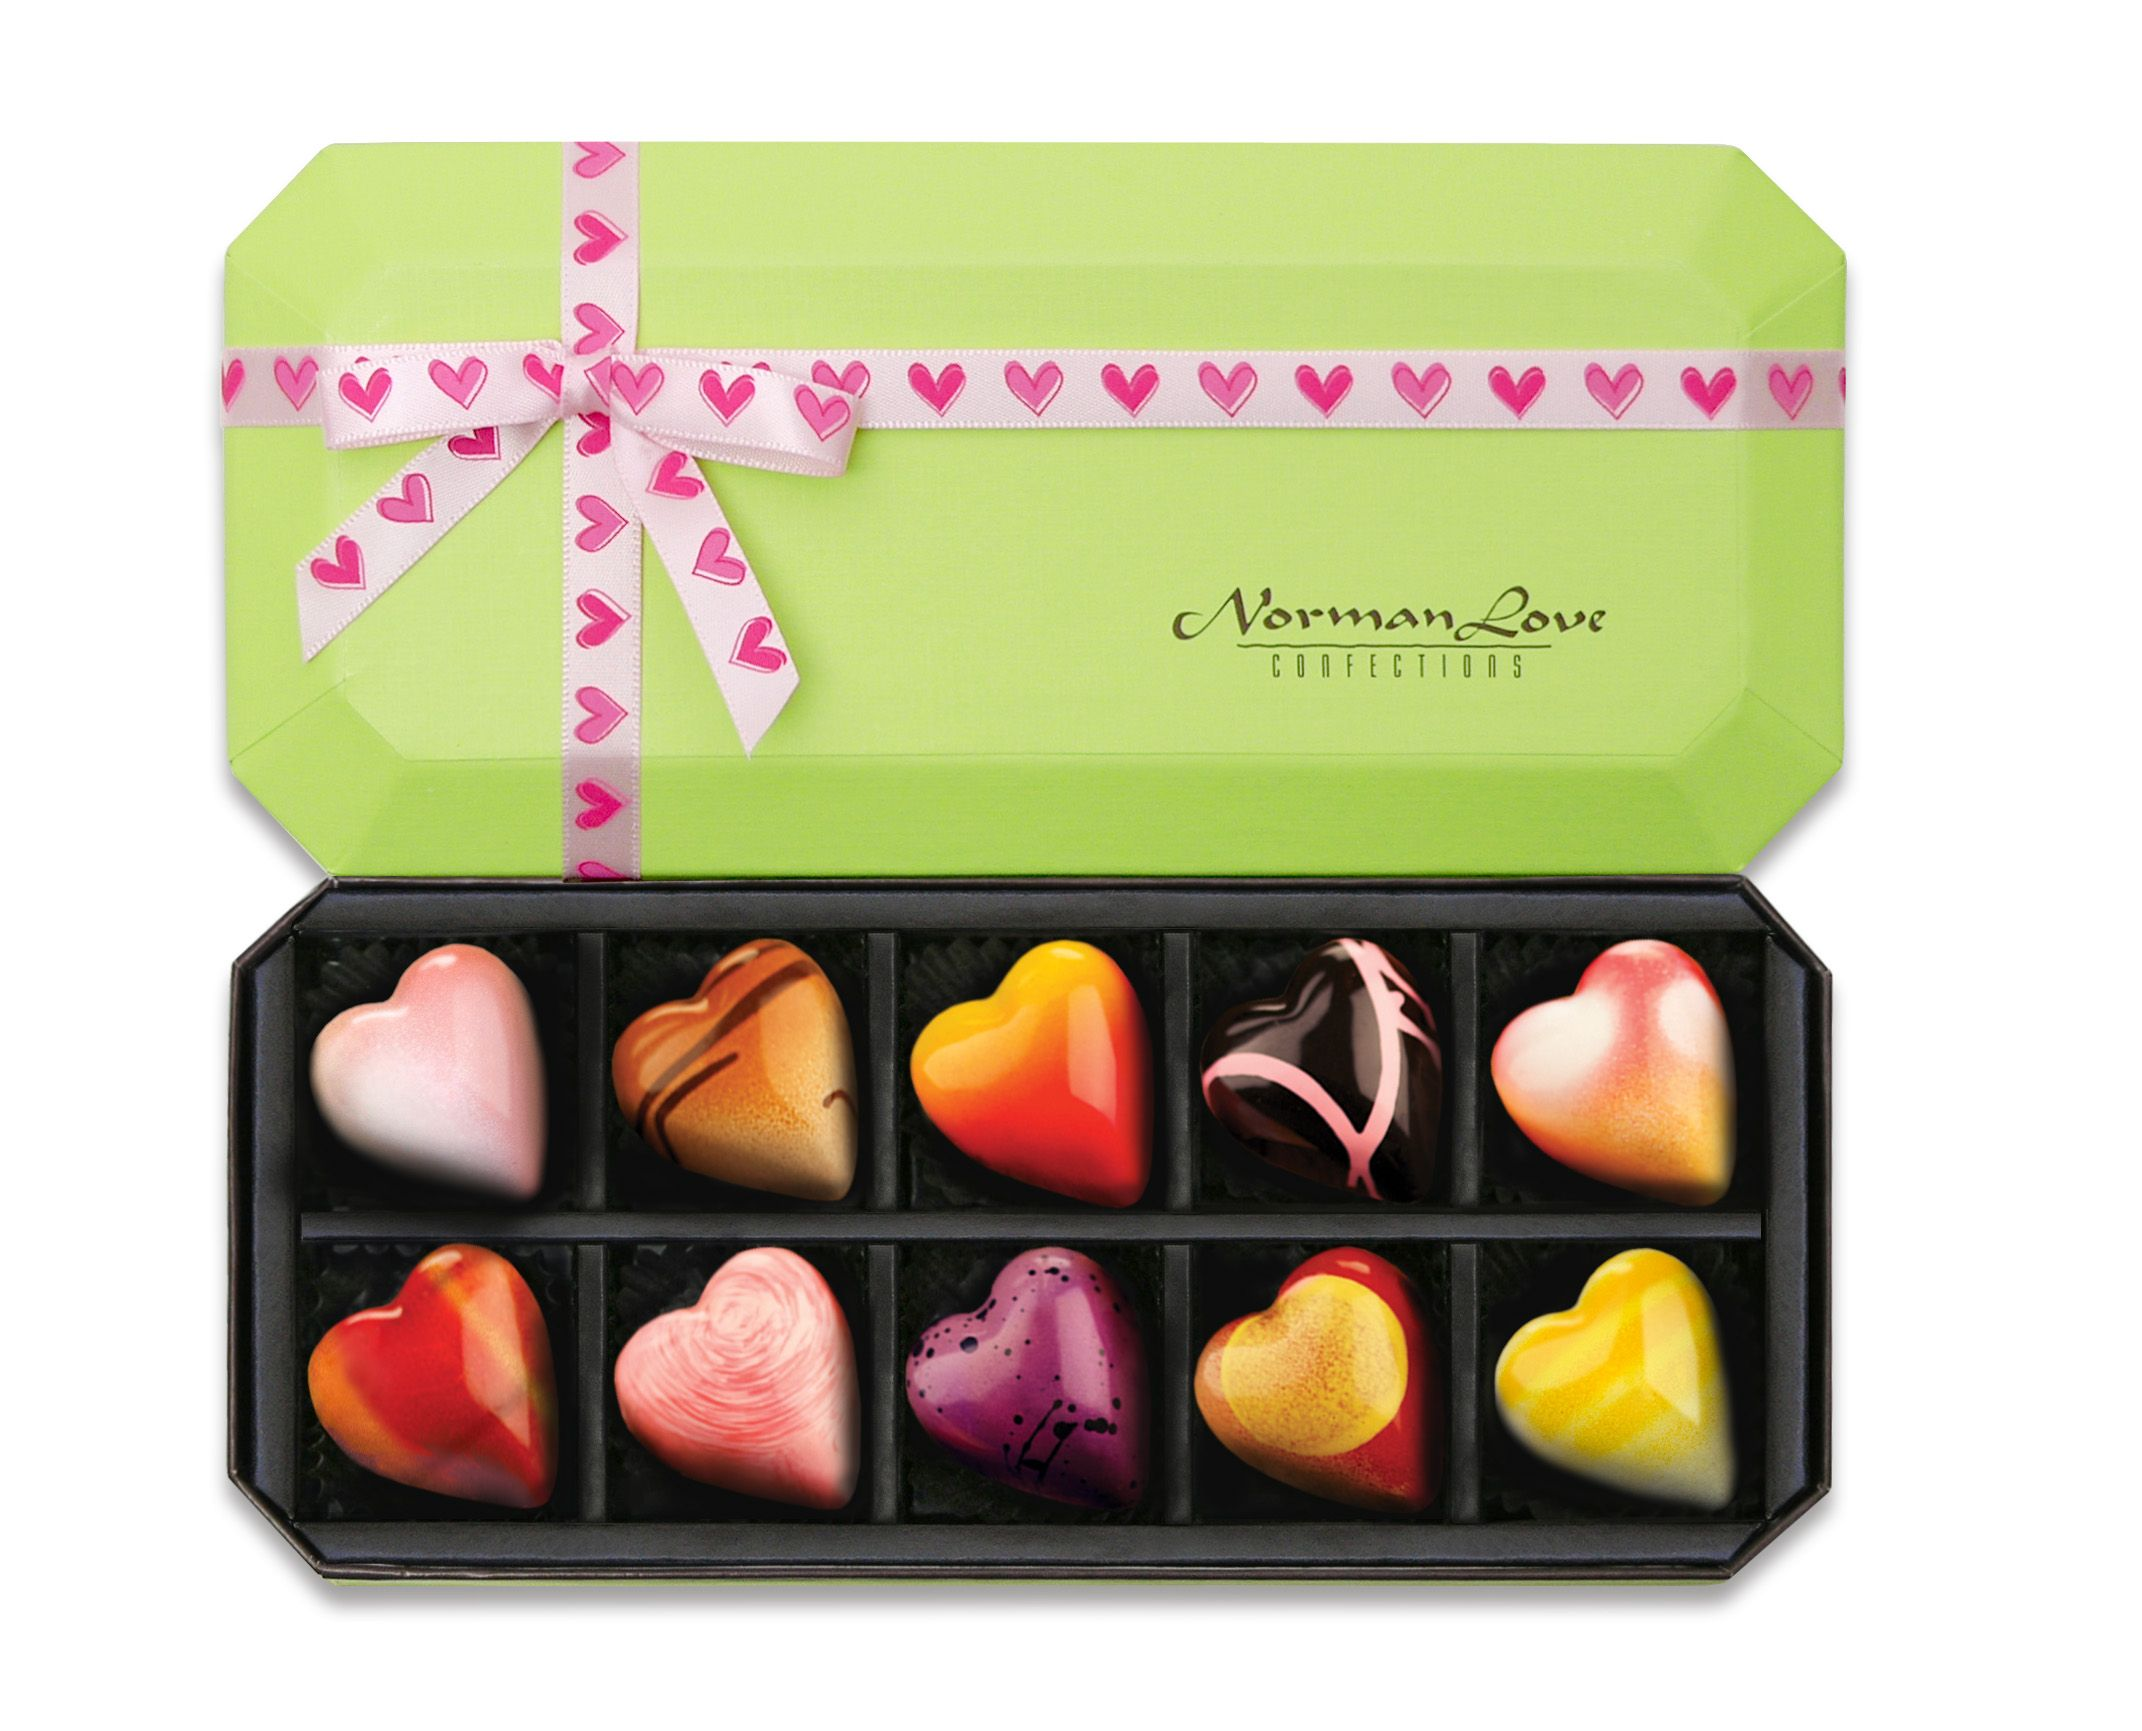 10pc. All Hearts Valentine's Day Chocolate Gift Box ($23.00) #NormanLoveConfections